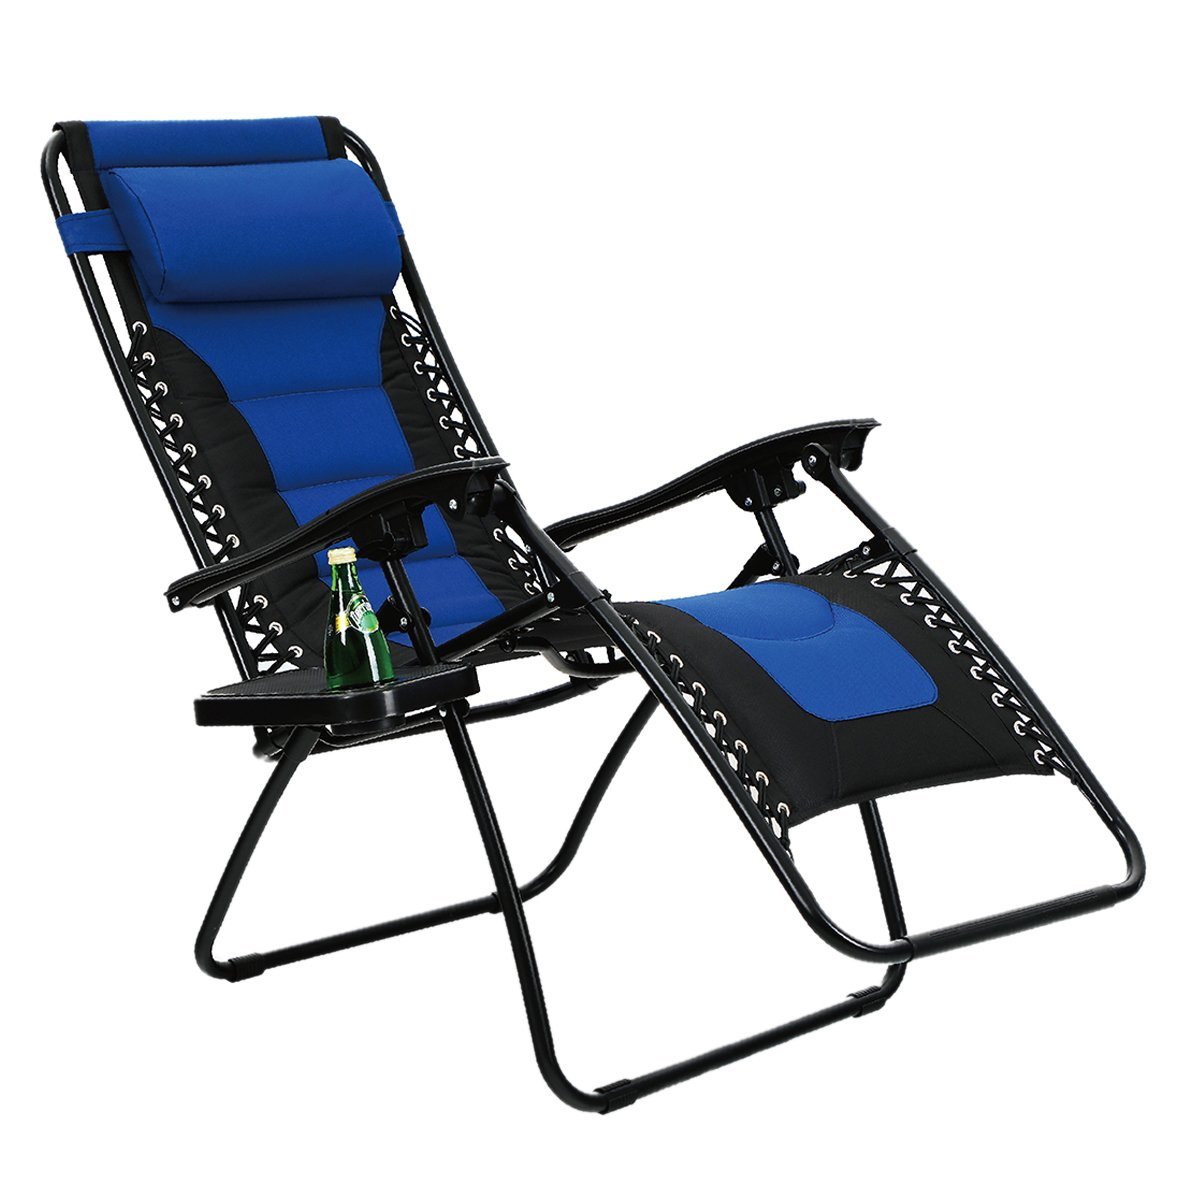 PV Padded Zero Gravity Lounge Chair Patio Adjustable Reclining with Cup Holder for Outdoor Yard Porch Navy Blue by Pv